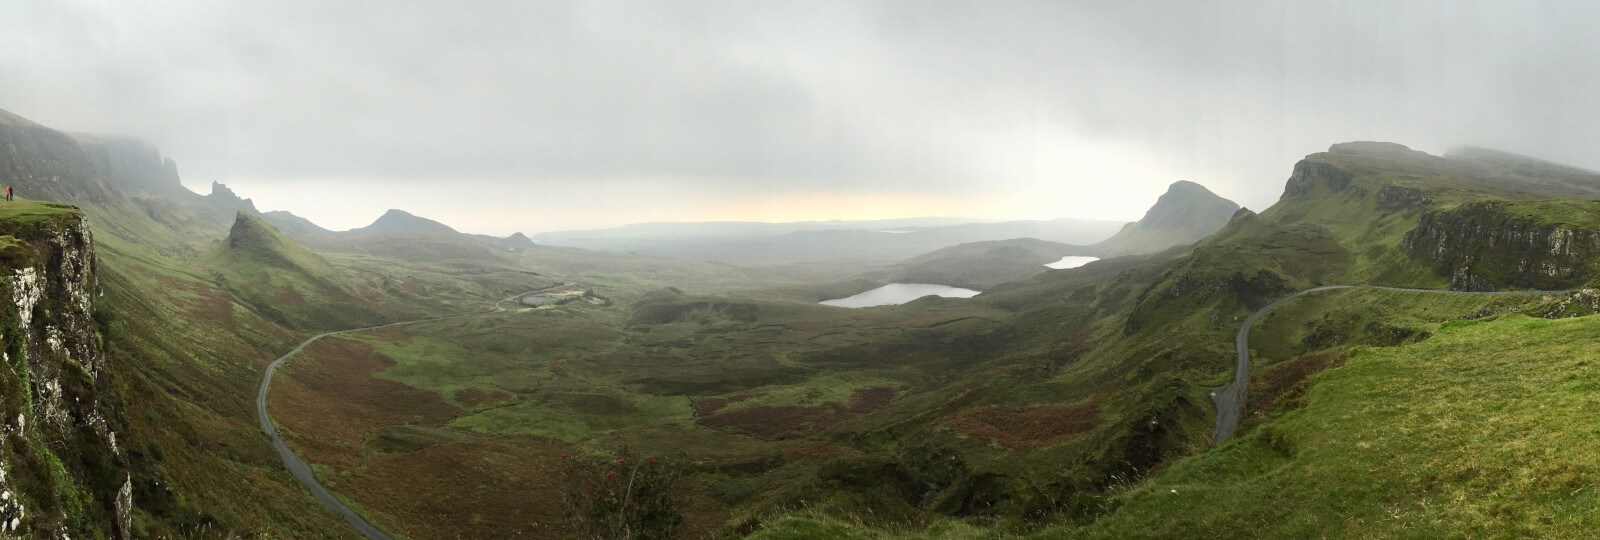 Panorama of the Quiraing, quite possibly the most stunning spot on this Isle of Skye driving itinerary